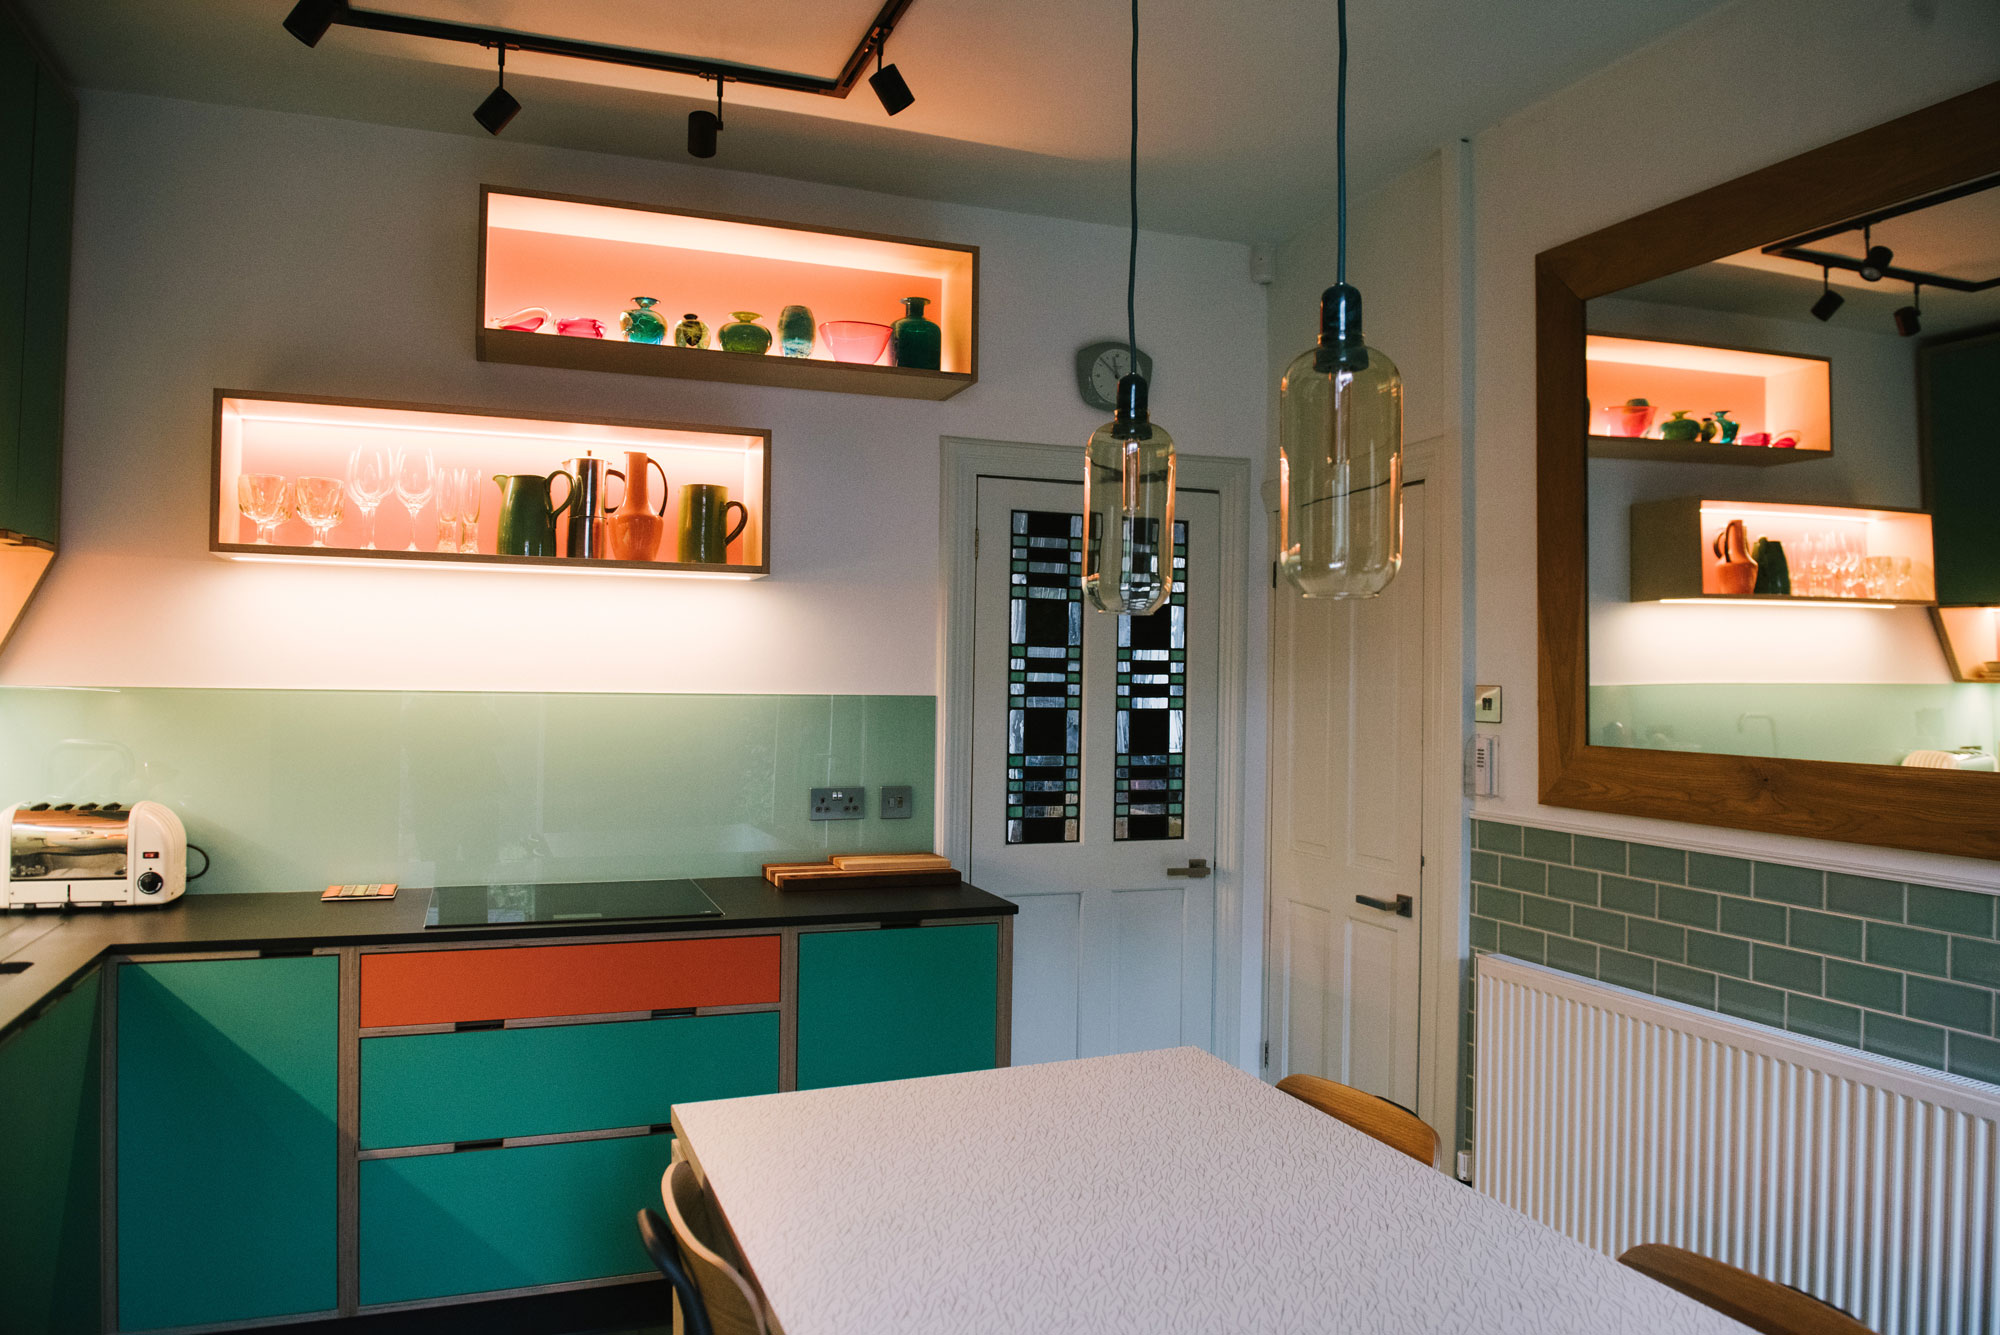 Retro kitchen in green and orange